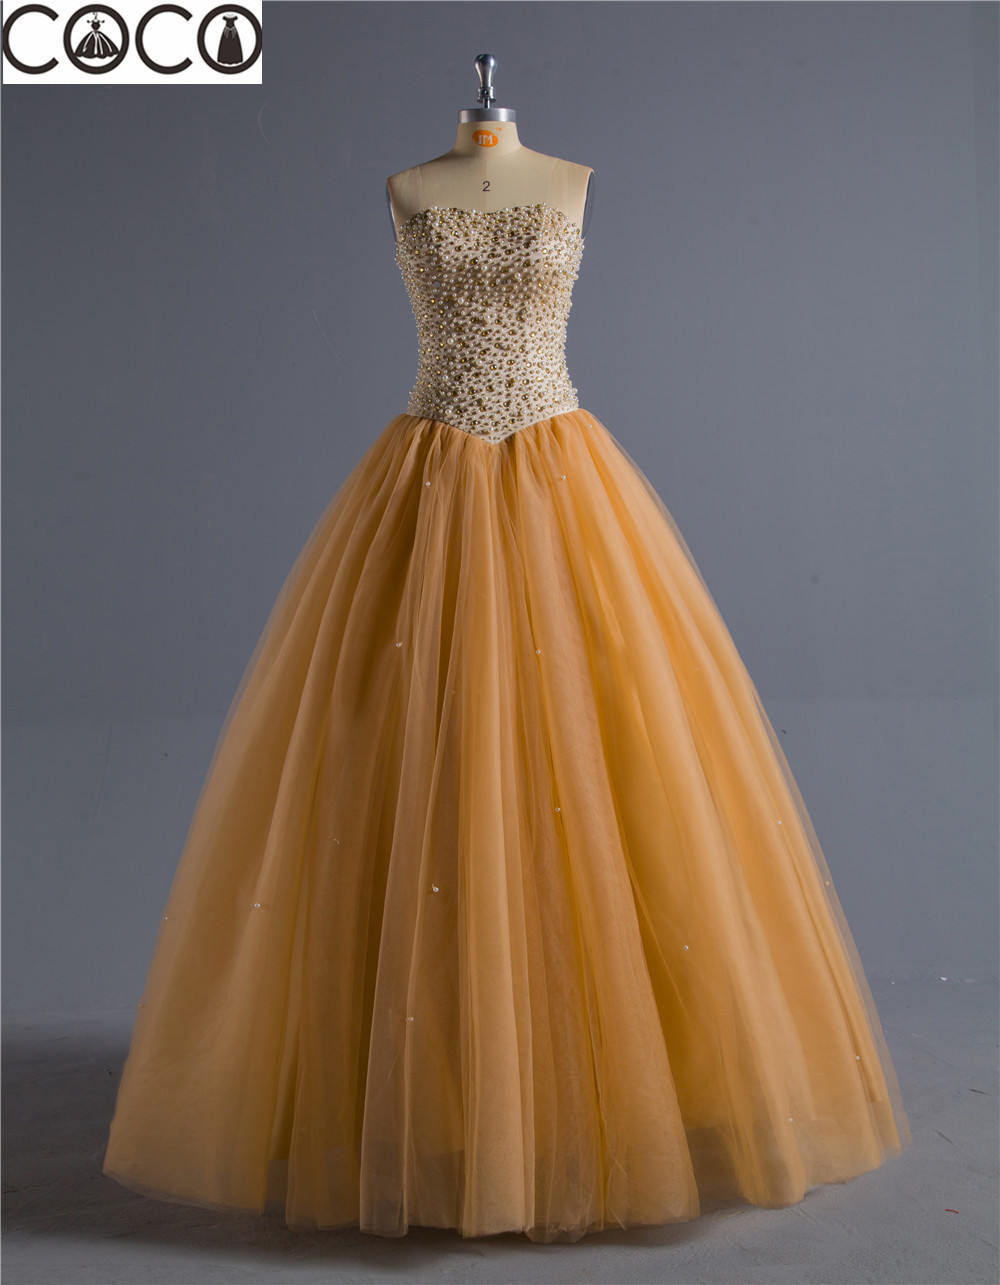 2015 cocodress ball gown gold sweetheart organza beaded for Wedding dresses with gold beading